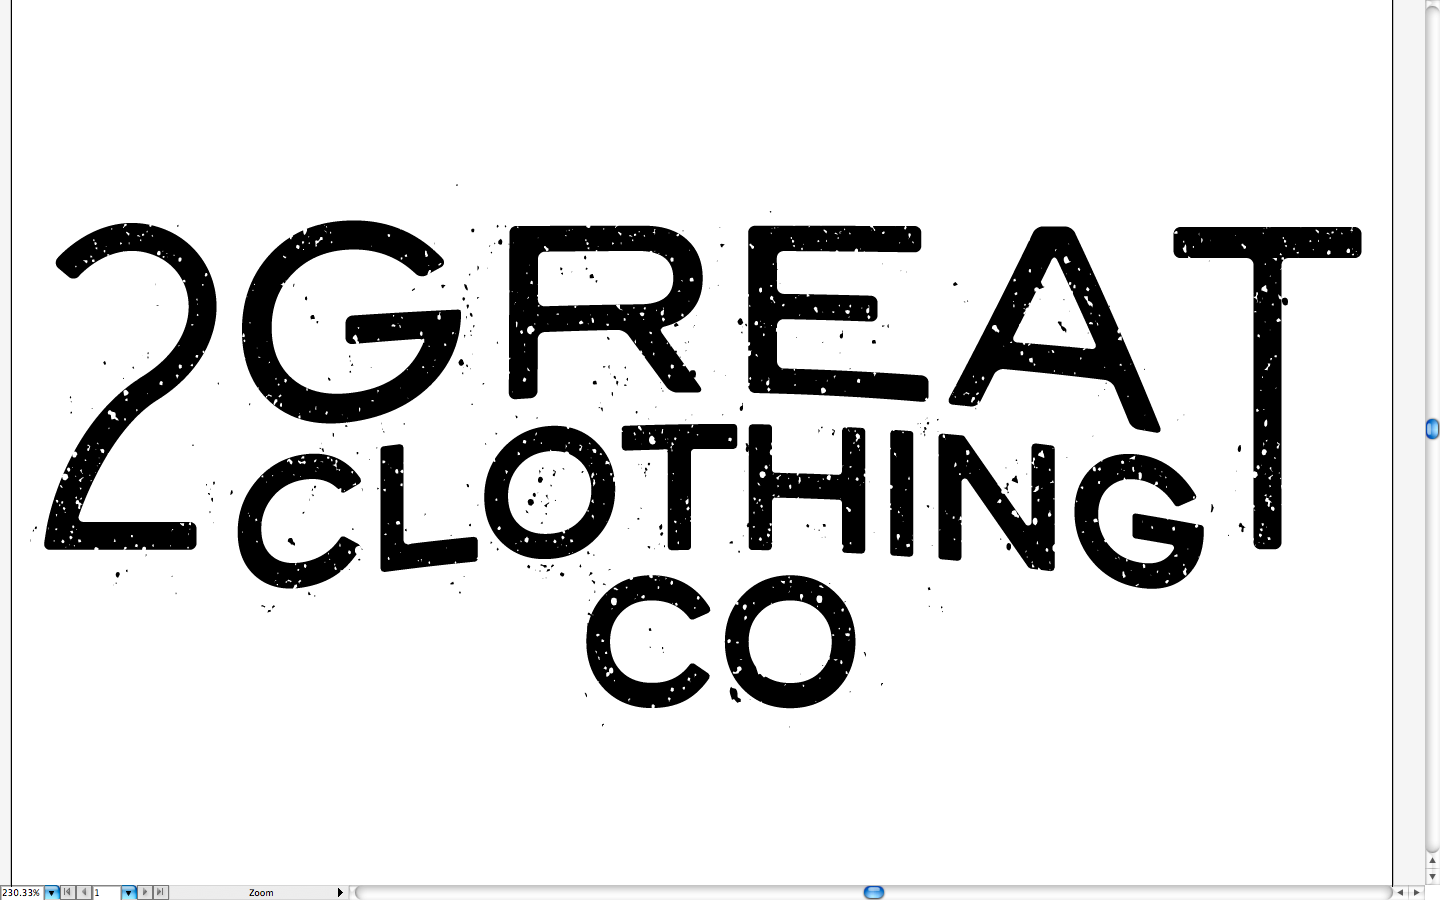 2Great Clothing Co. - image 20 - student project